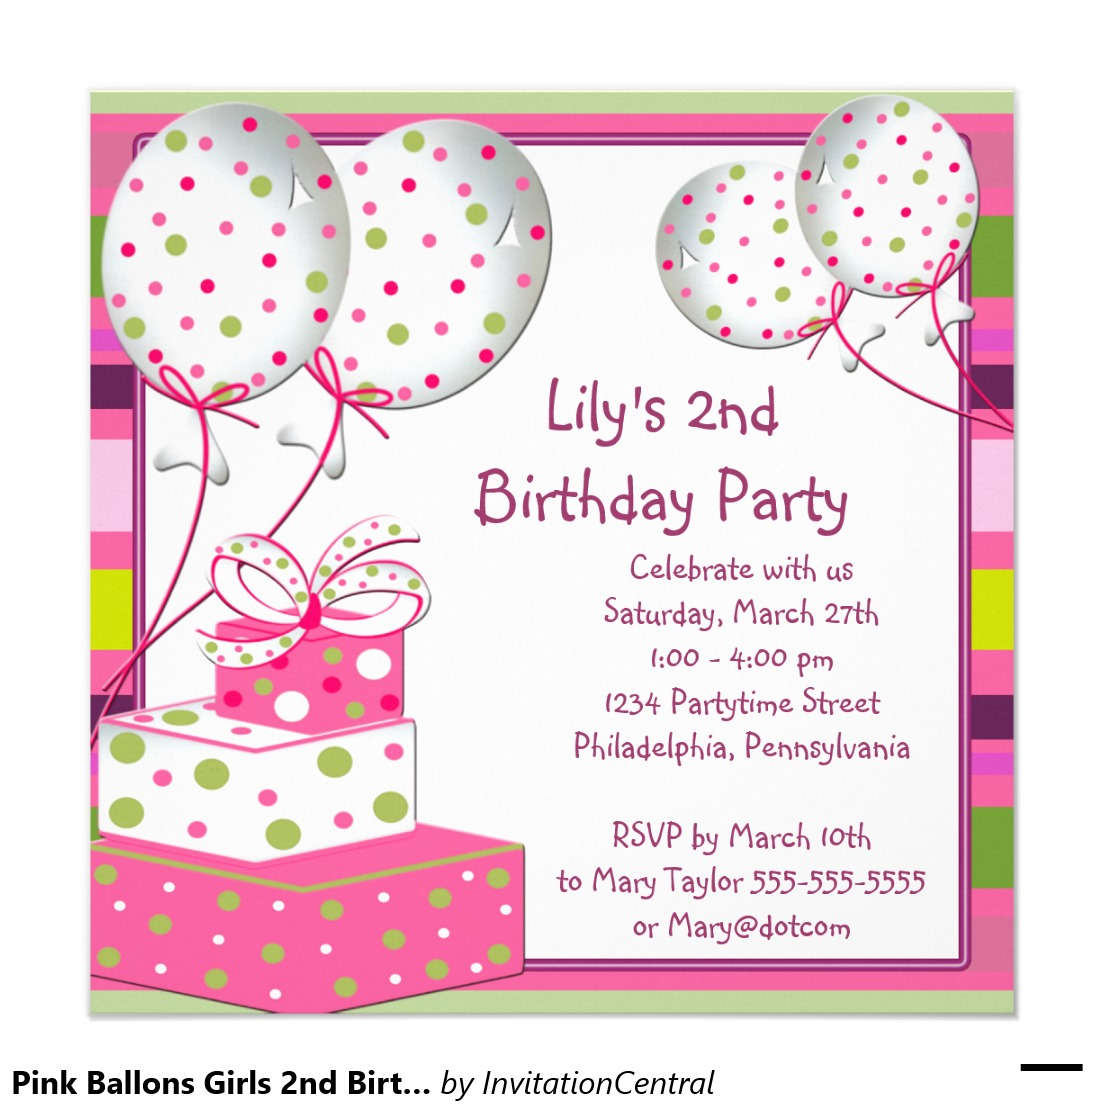 Invitation Cards For Birthday Party For Girls Cards Ideas With